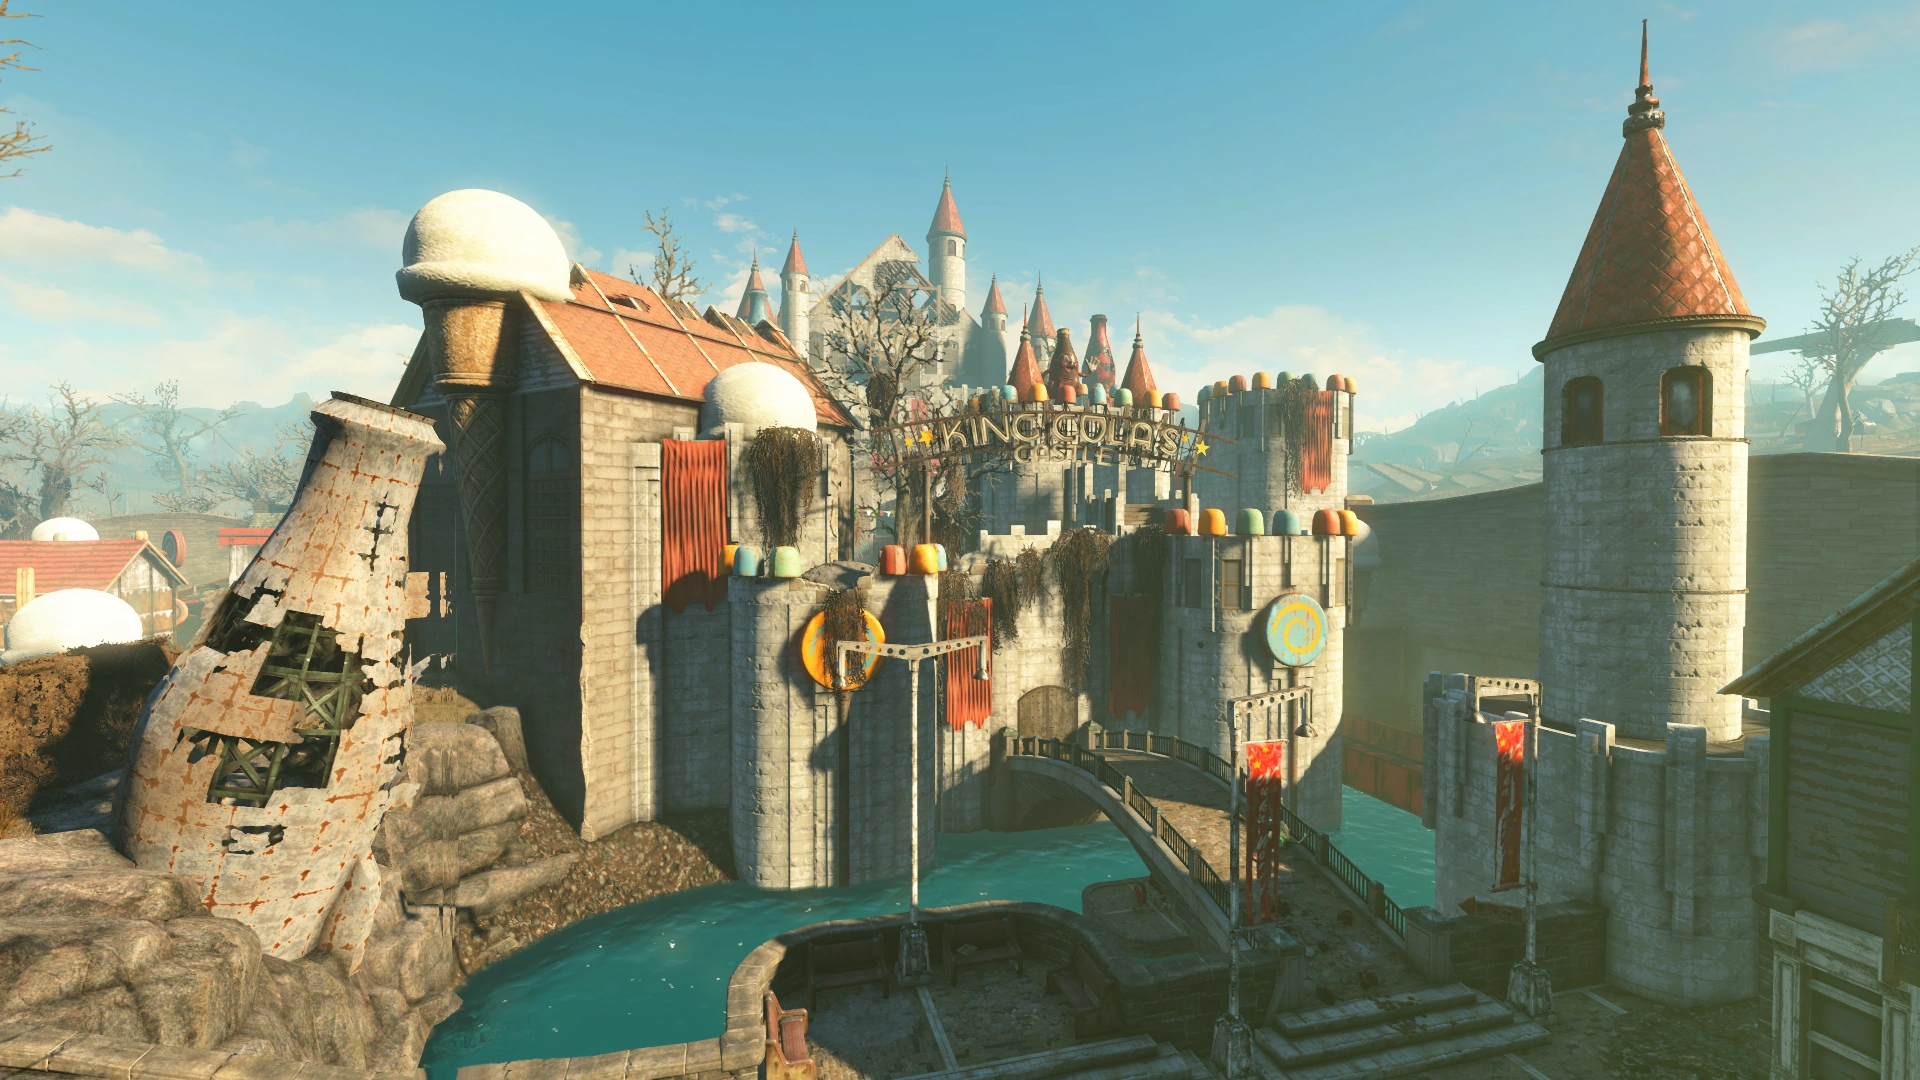 King Cola's Castle